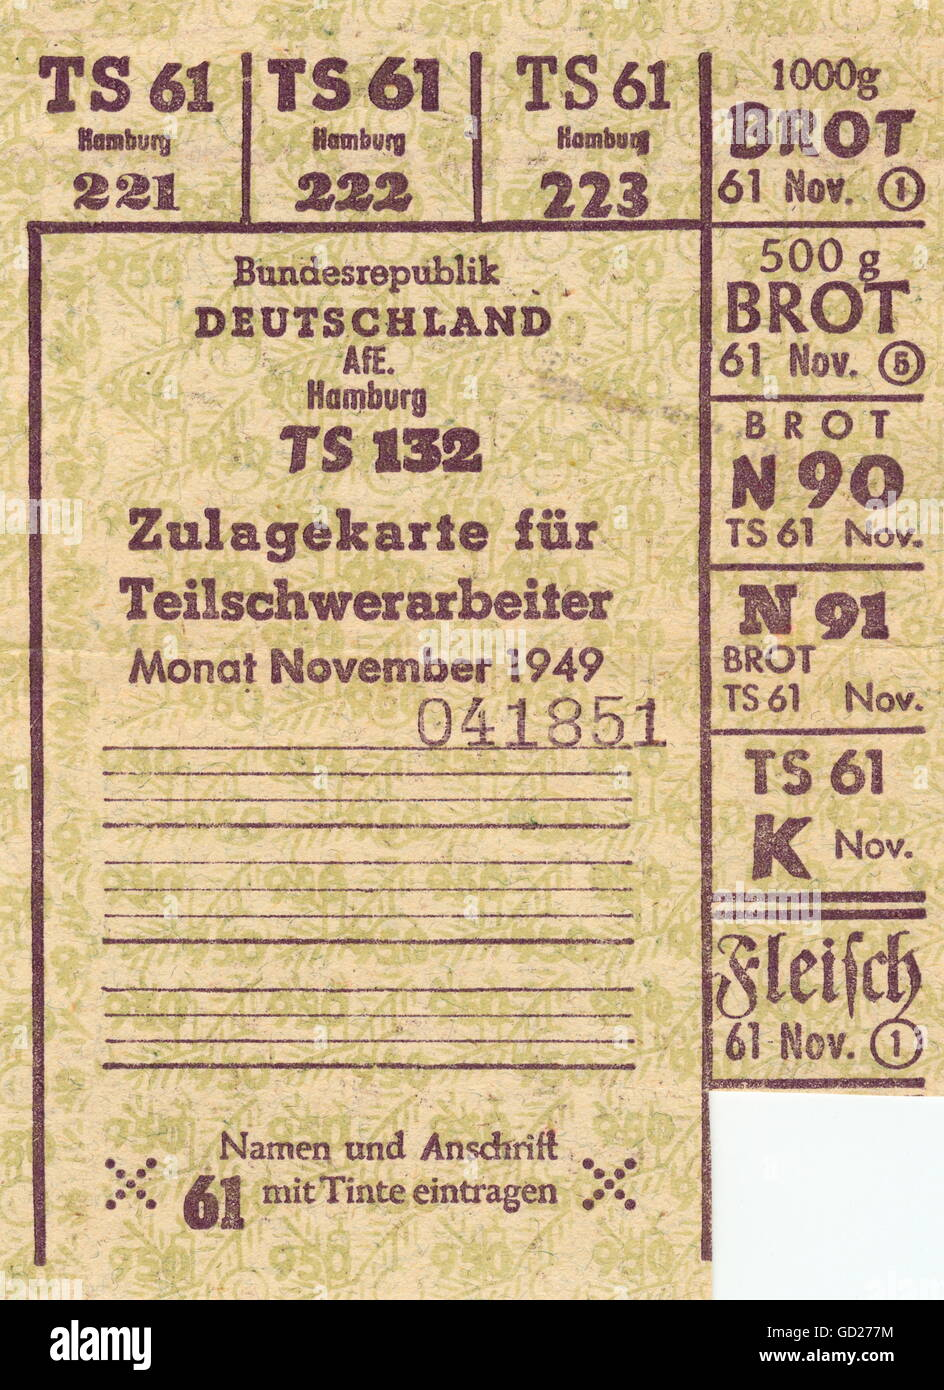 20th November 1949 1940s Imágenes De Stock   20th November 1949 ... 9204996506a3